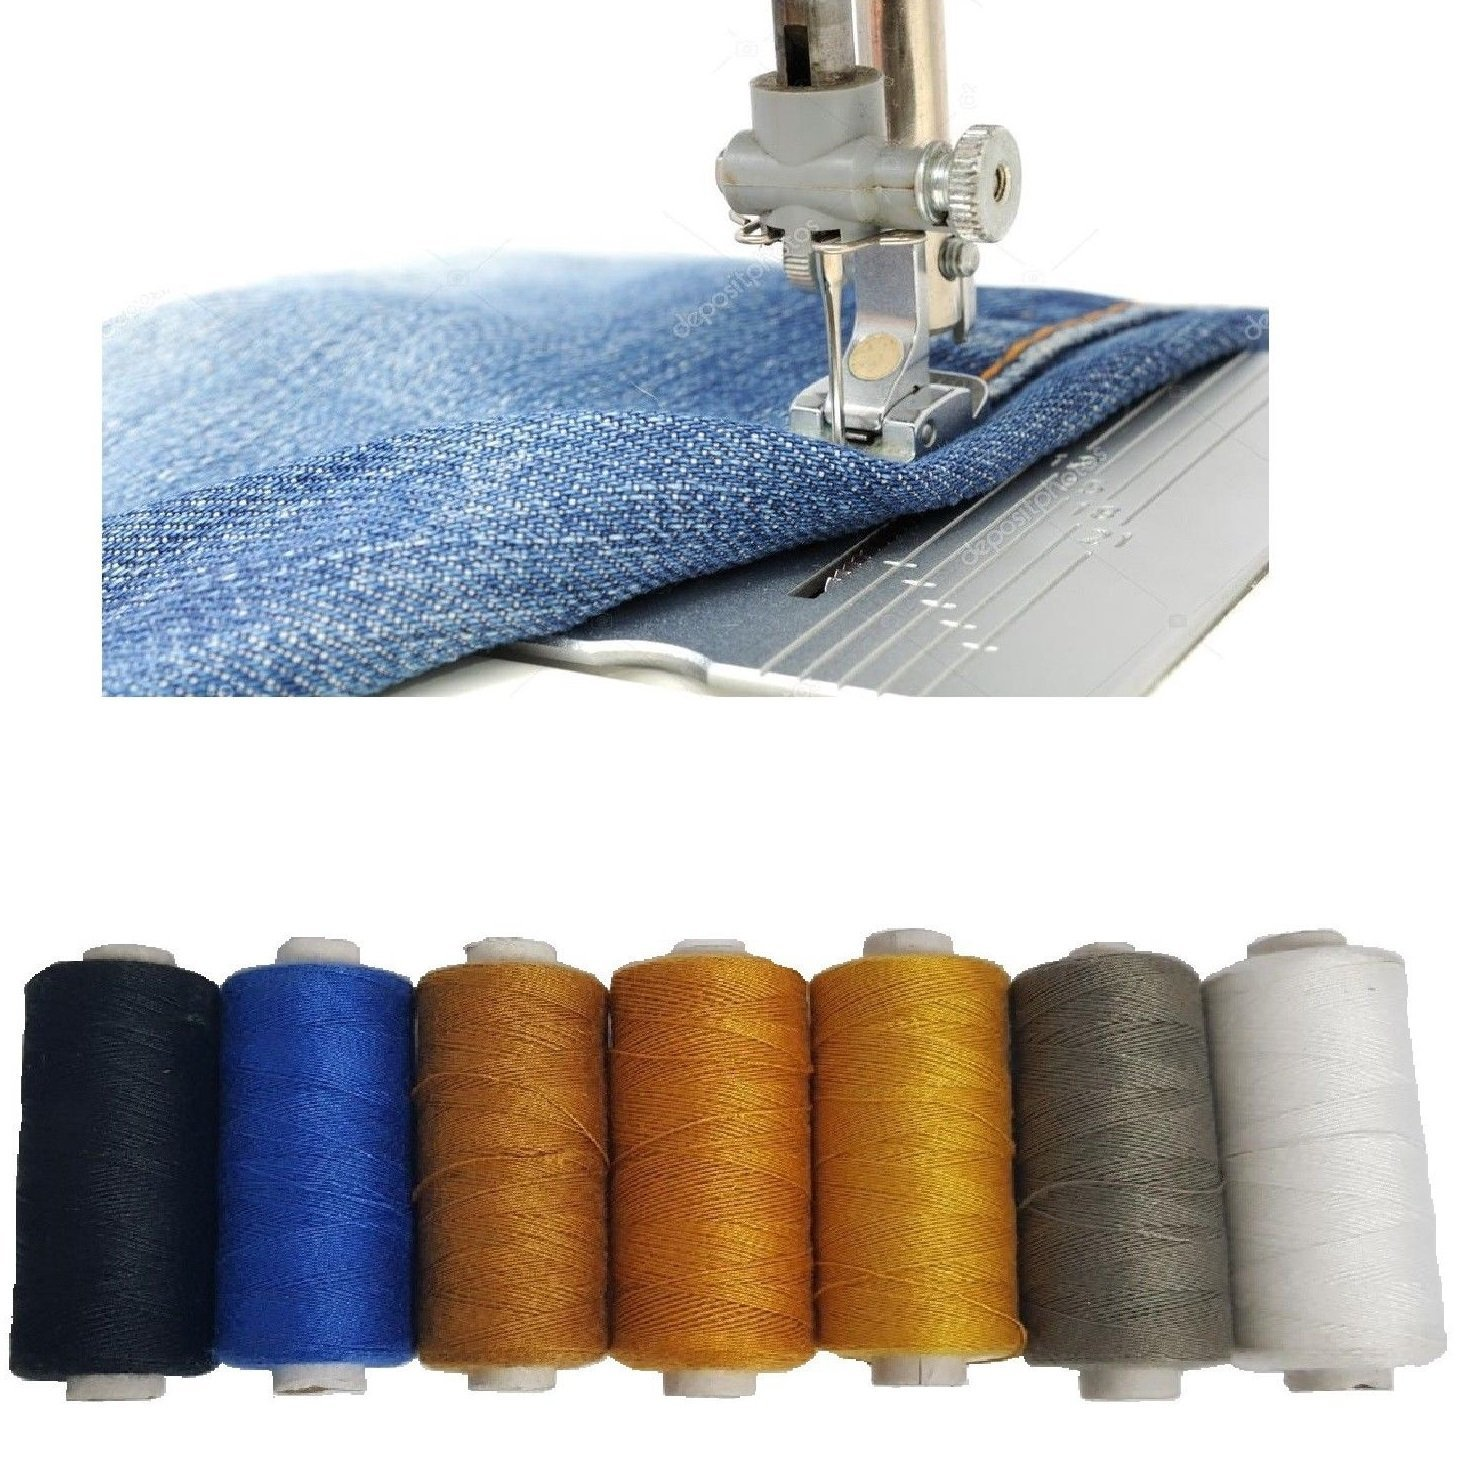 7 Pack Denim Threads Polyester Cotton Spools Sewing Strong Stitch Button Jeans Repair